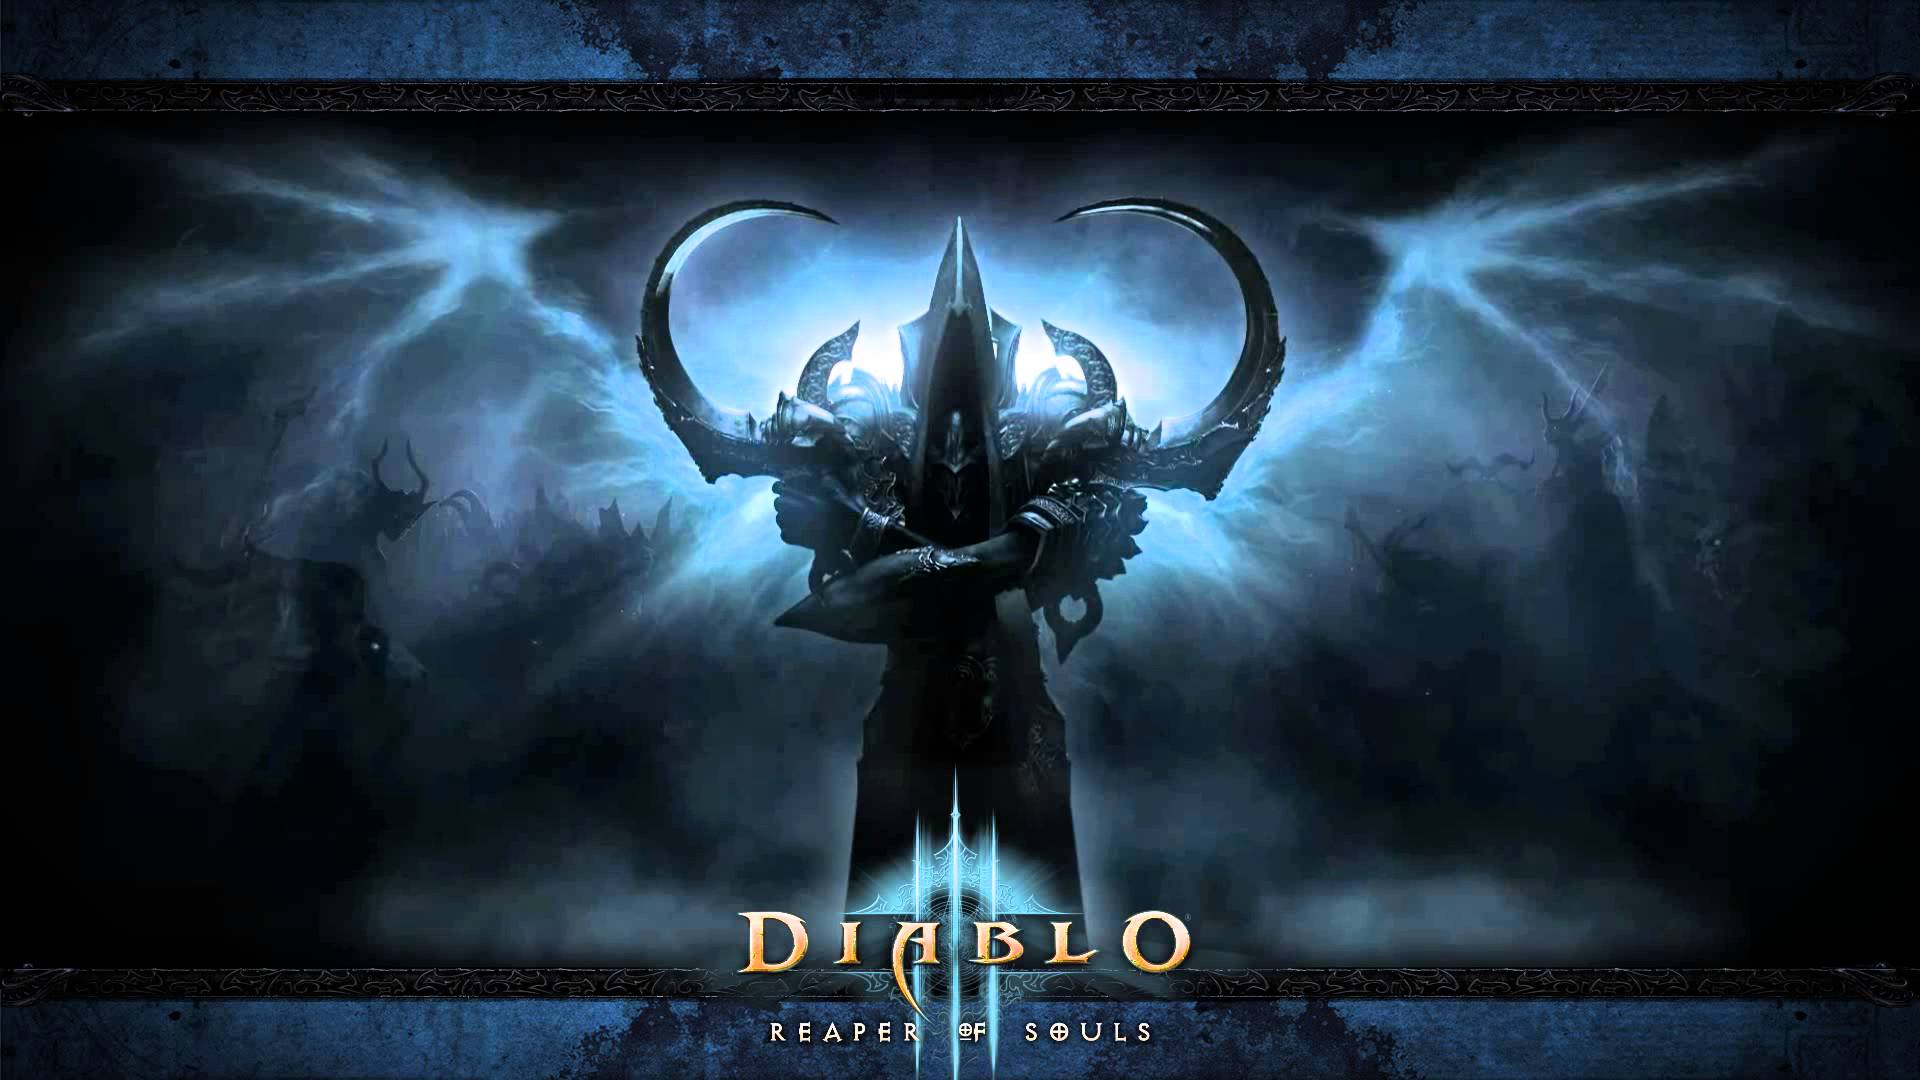 Blizzard Talks 'Reaper Of Souls' And What To Expect From The First 'Diablo III' Expansion